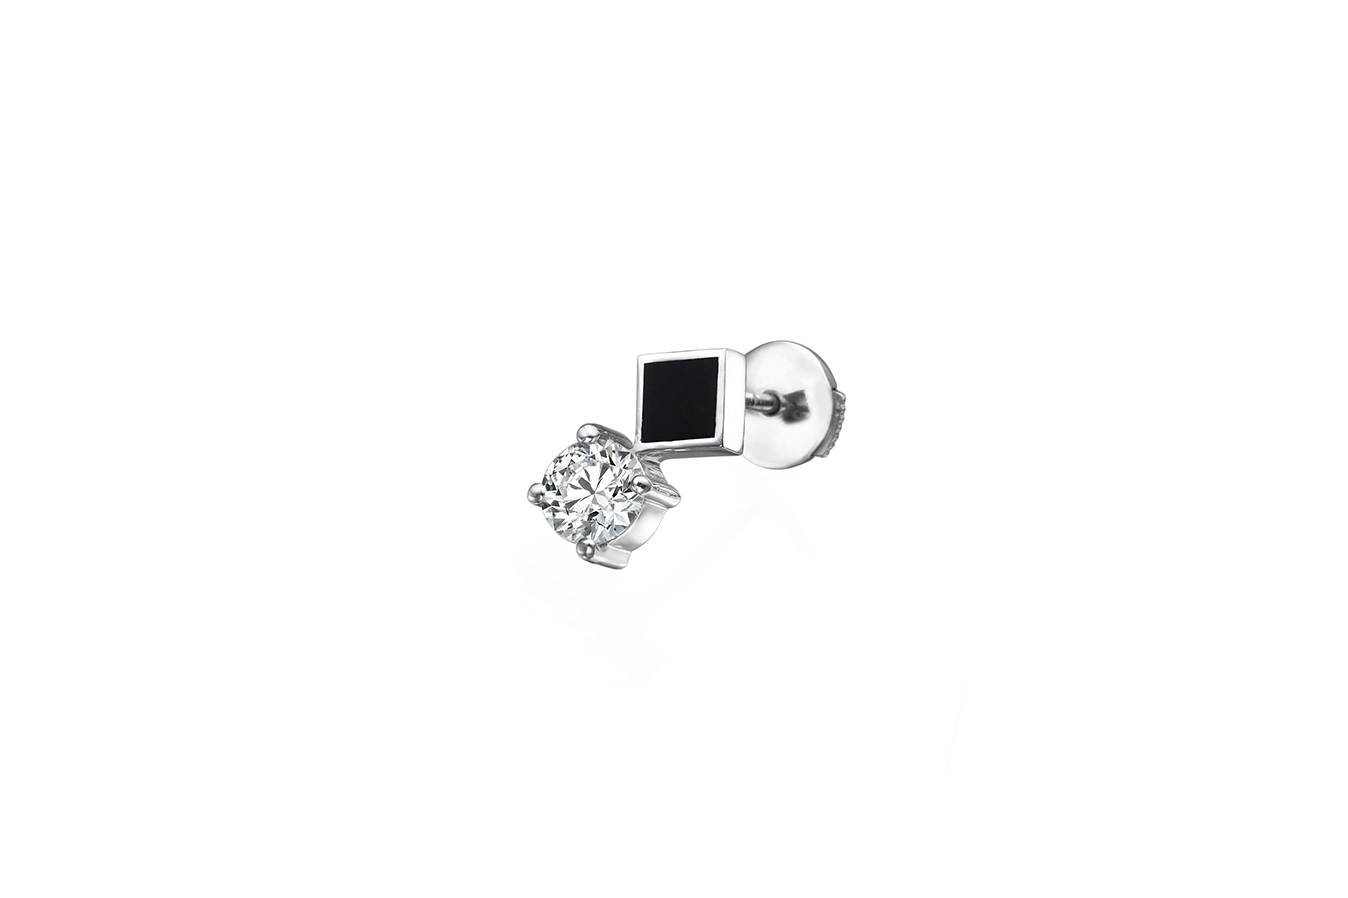 OBLIQUE MO+ EARRING 18K WHITE GOLD 0.50 CT DIAMOND